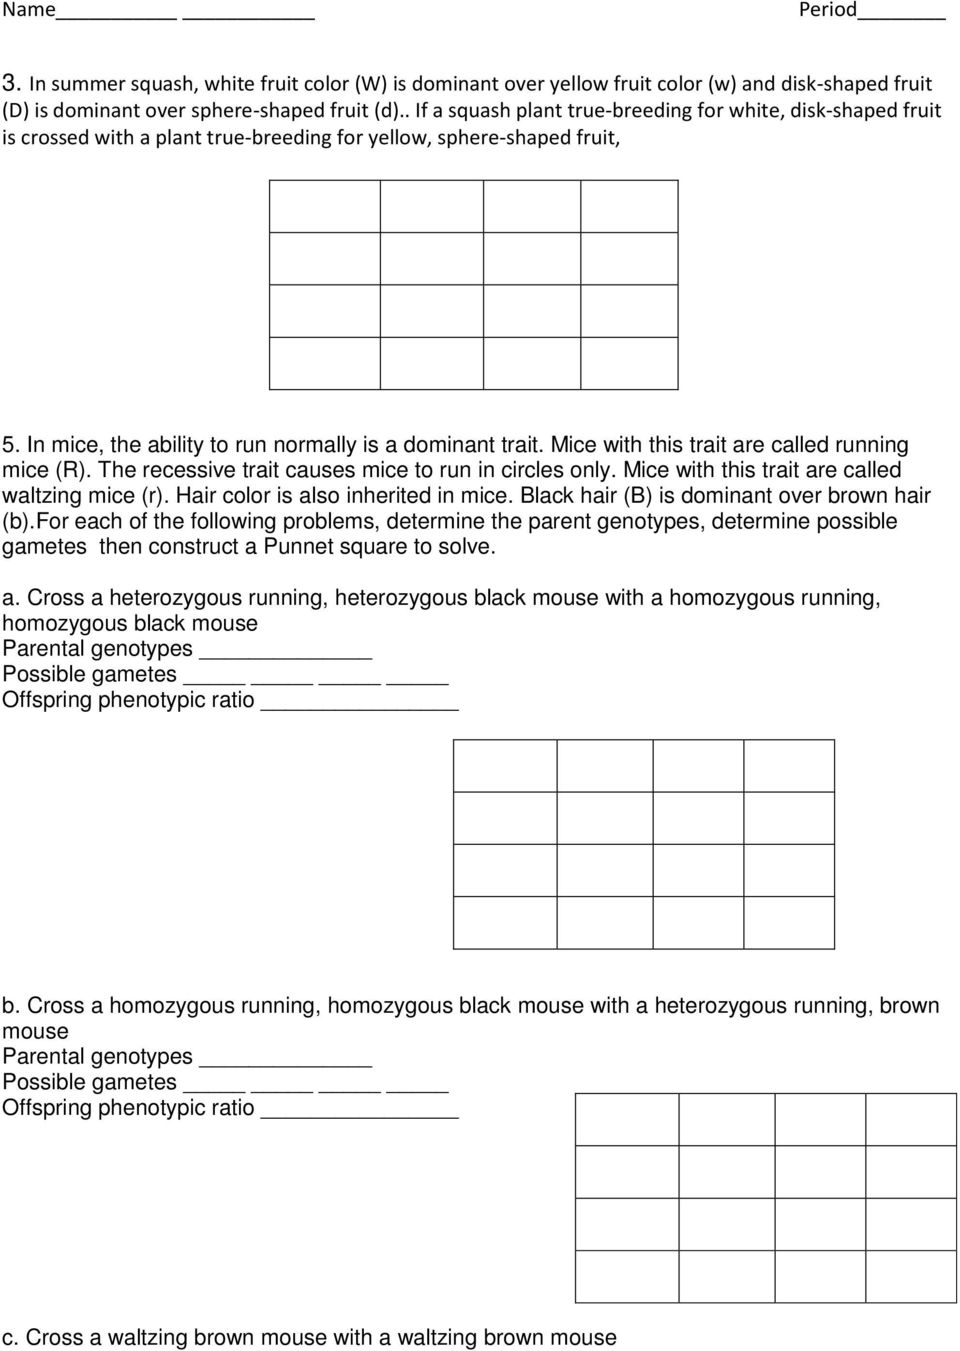 worksheet Dihybrid Cross Problems Worksheet ex a tall green pea plant ttgg is crossed with short white mice this trait are called running r the recessive causes